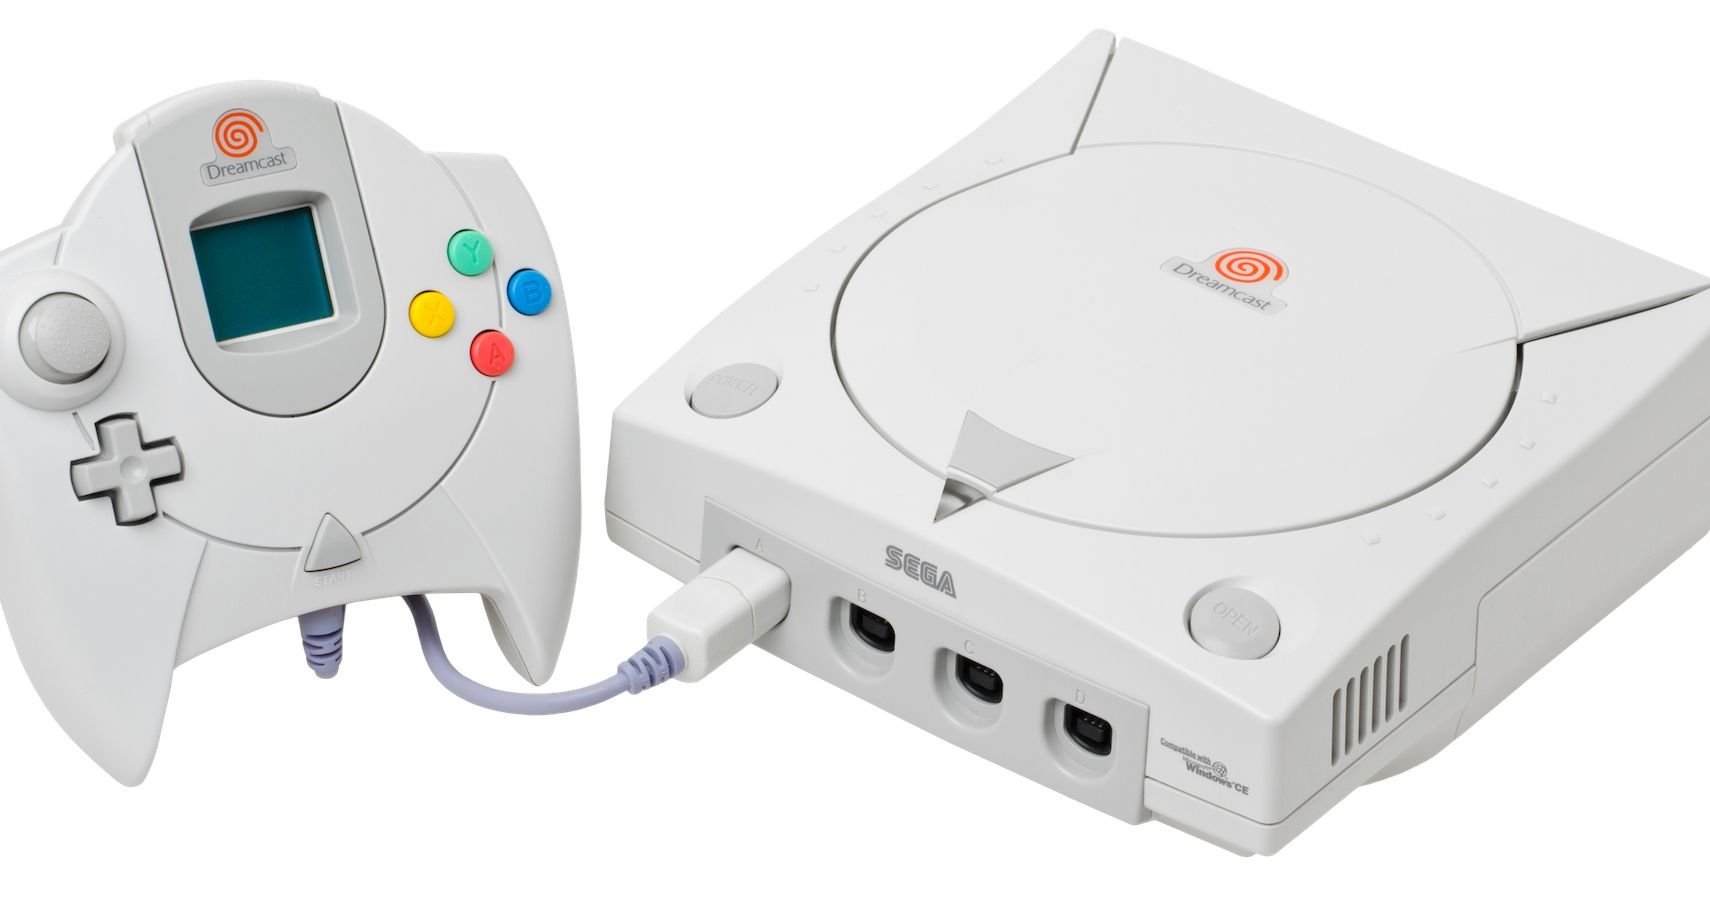 10 Things Sega's Dreamcast Did That Were Way Ahead Of Its Time